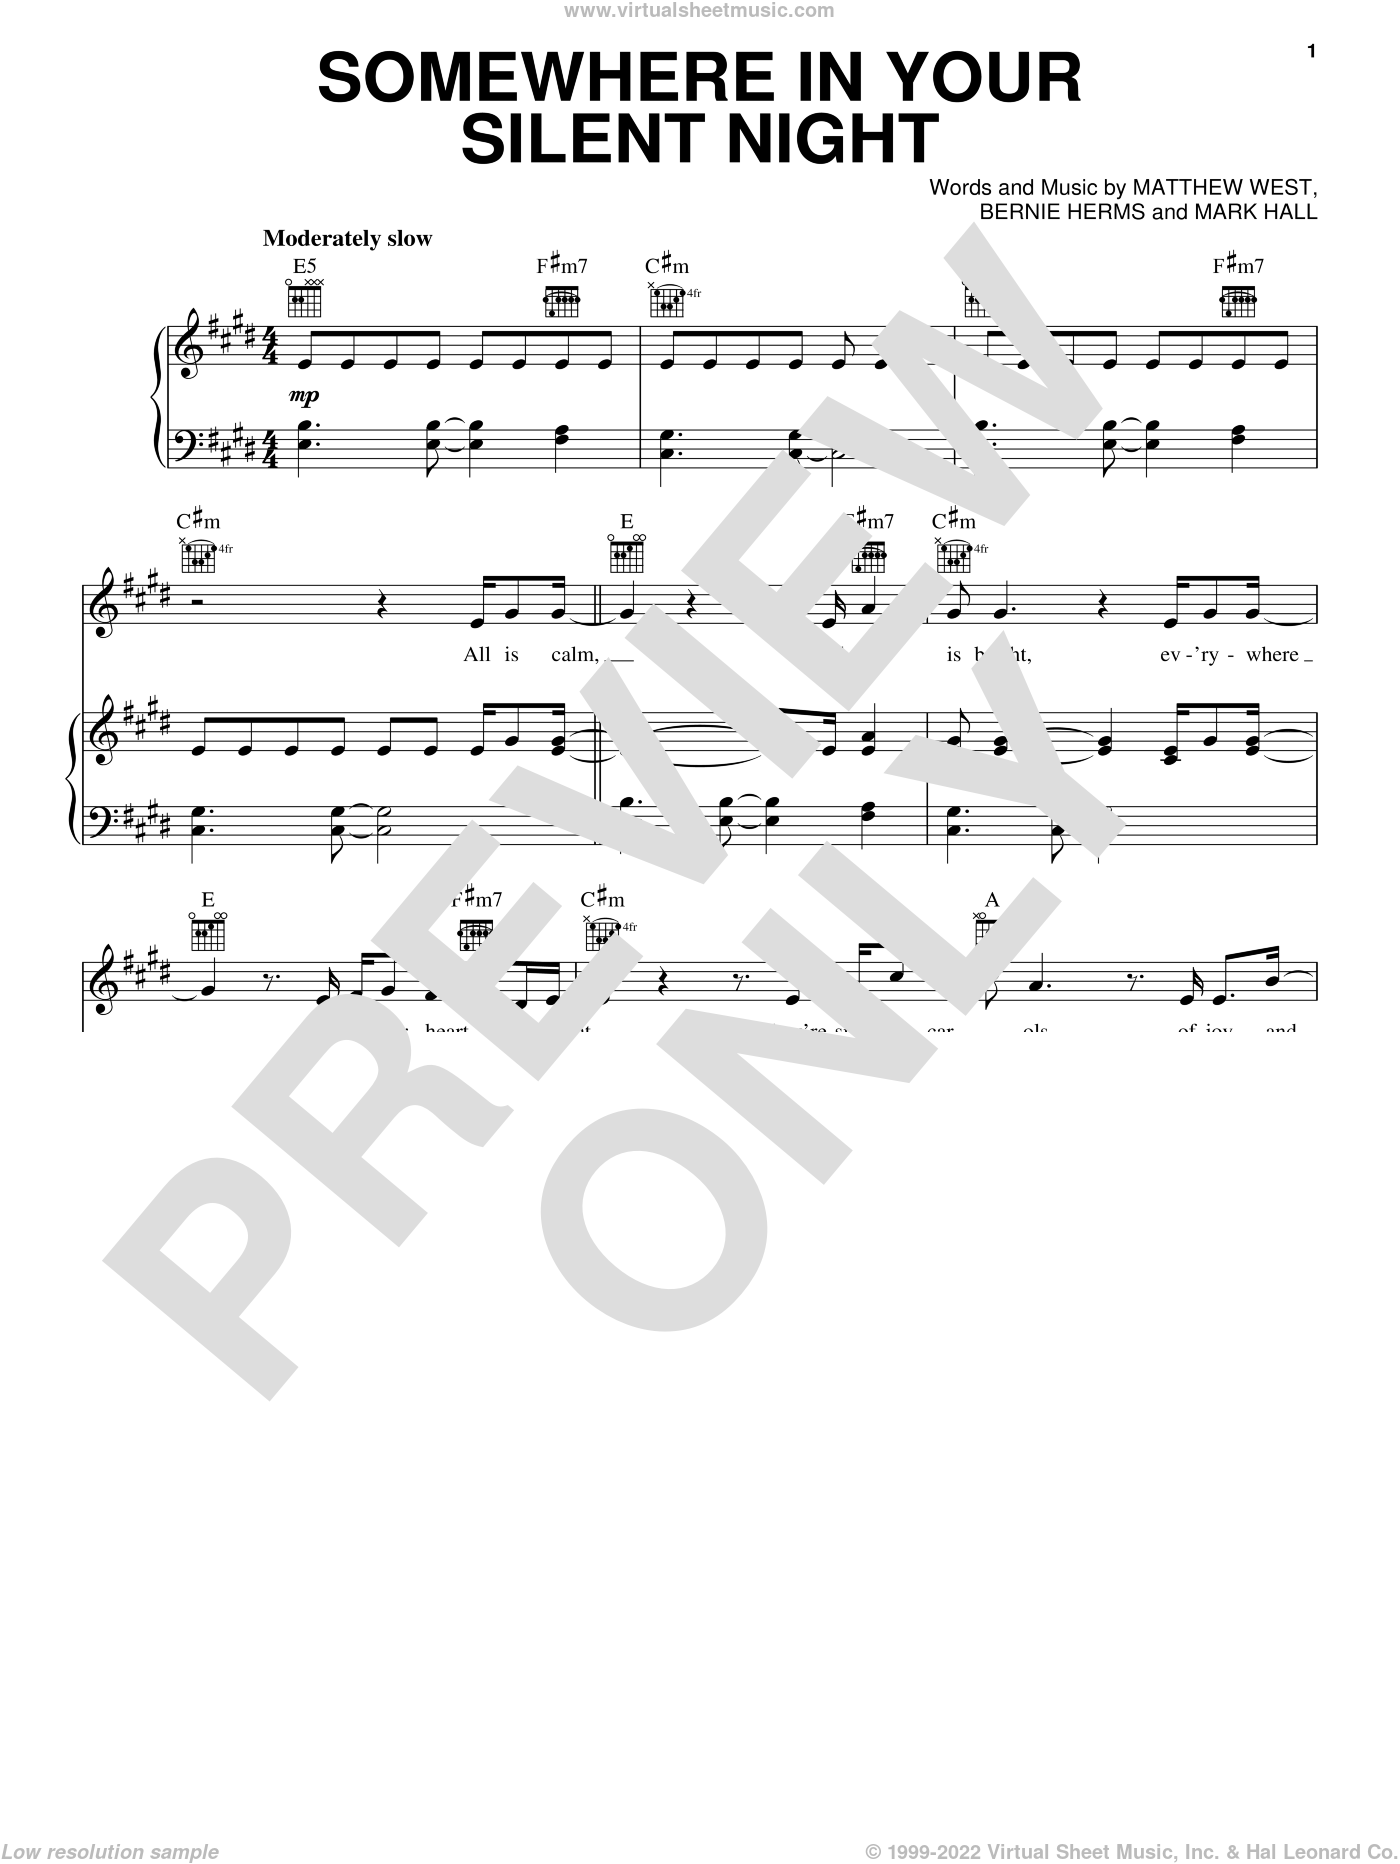 Somewhere In Your Silent Night sheet music for voice, piano or guitar by Casting Crowns, Bernie Herms, Mark Hall and Matthew West, intermediate. Score Image Preview.